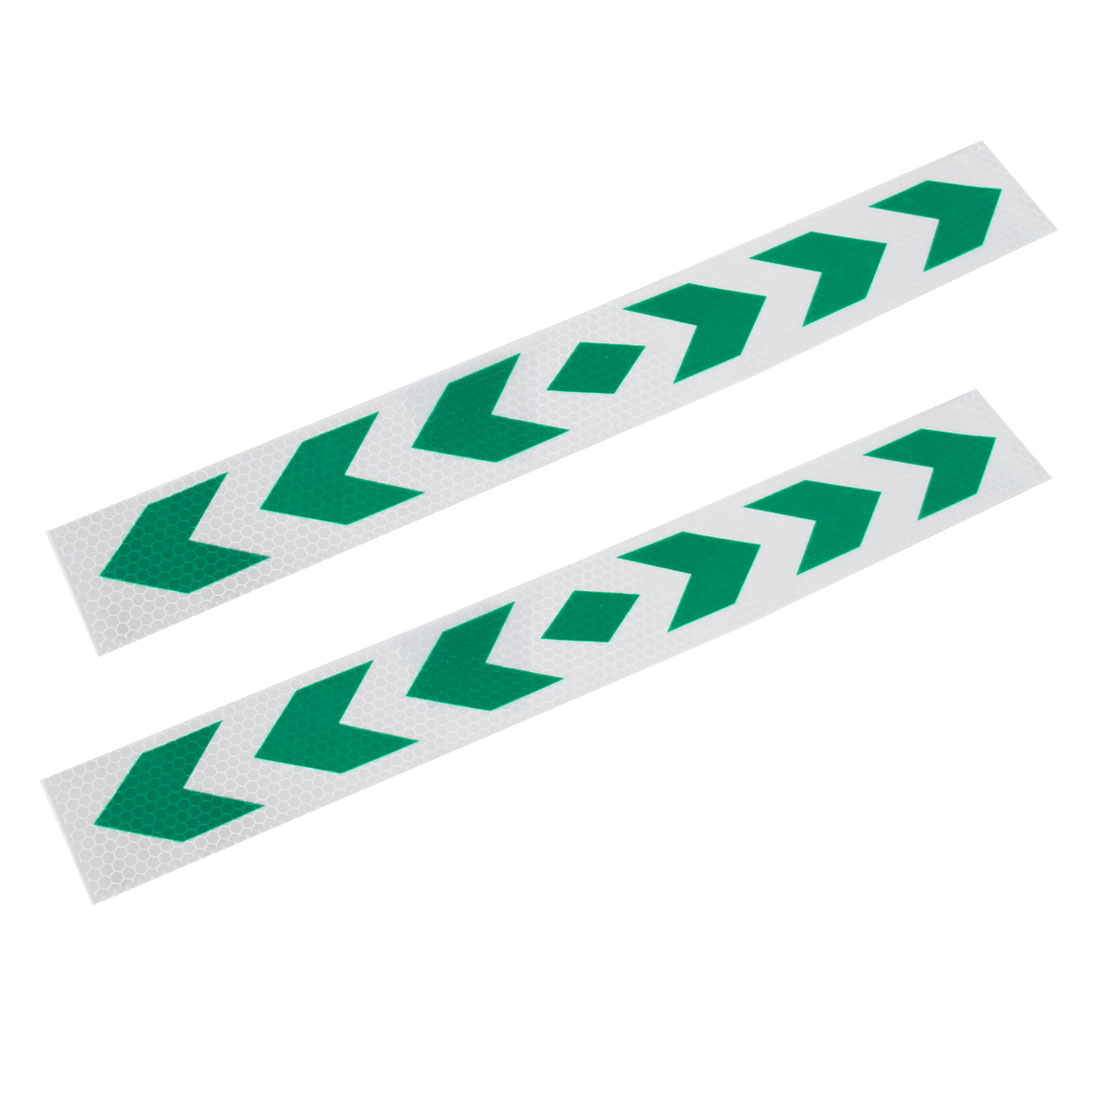 Pair Car Truck Trailer Reflective Safety Arrows Pattern Tape Sticker Green Silver Tone